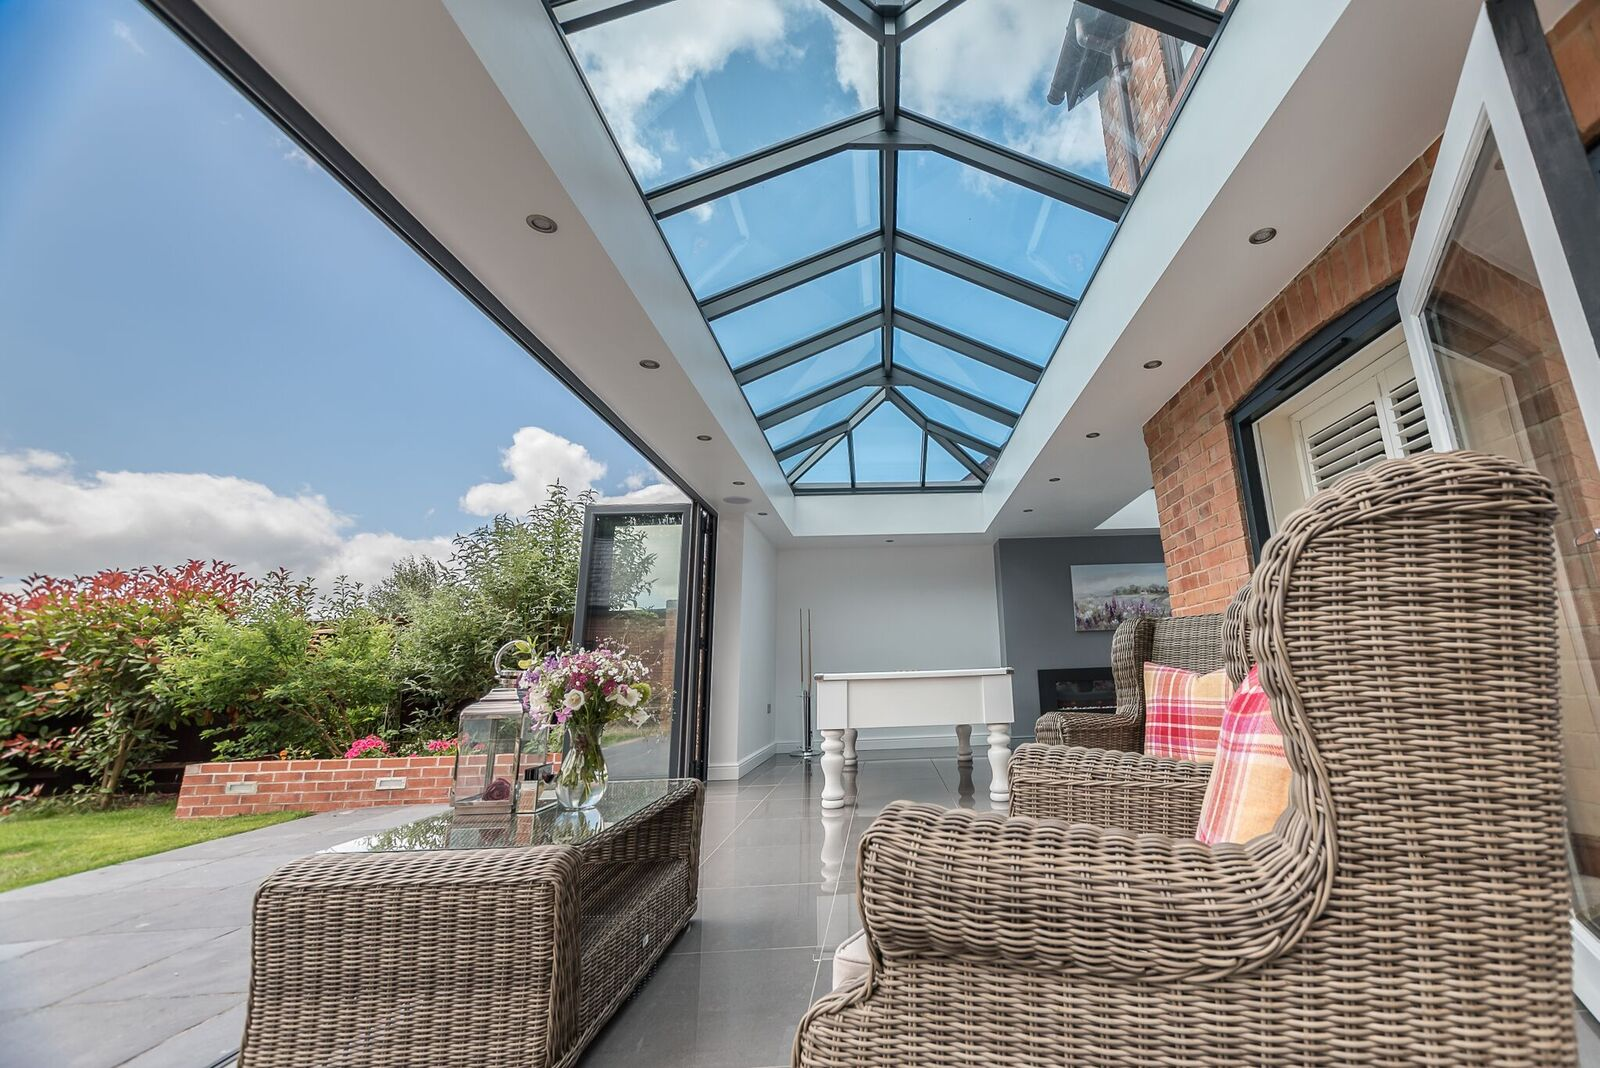 ATLAS Village Conservatories